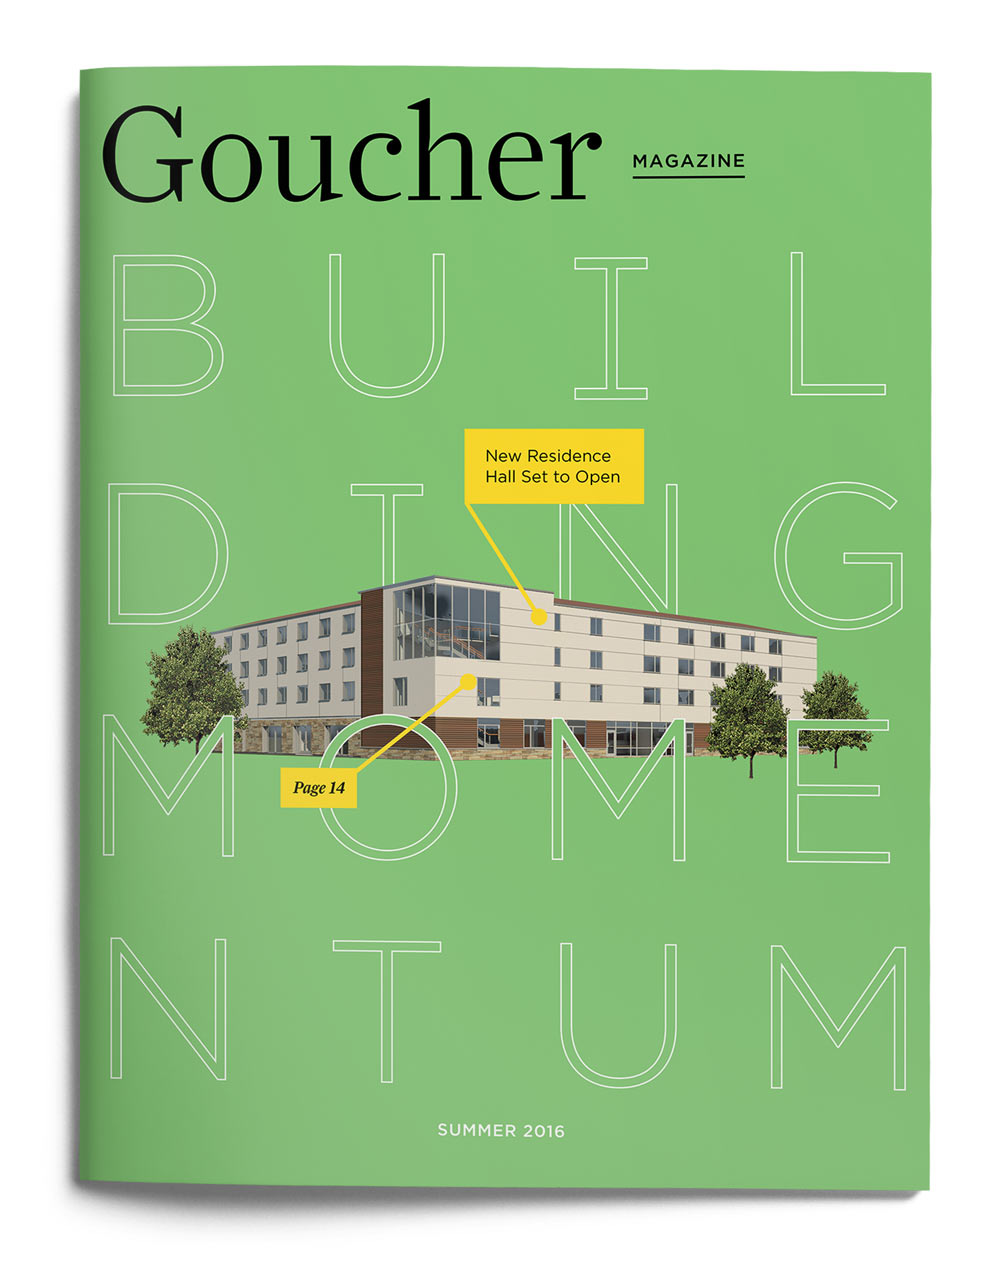 Goucher.Covers_2_c.jpg